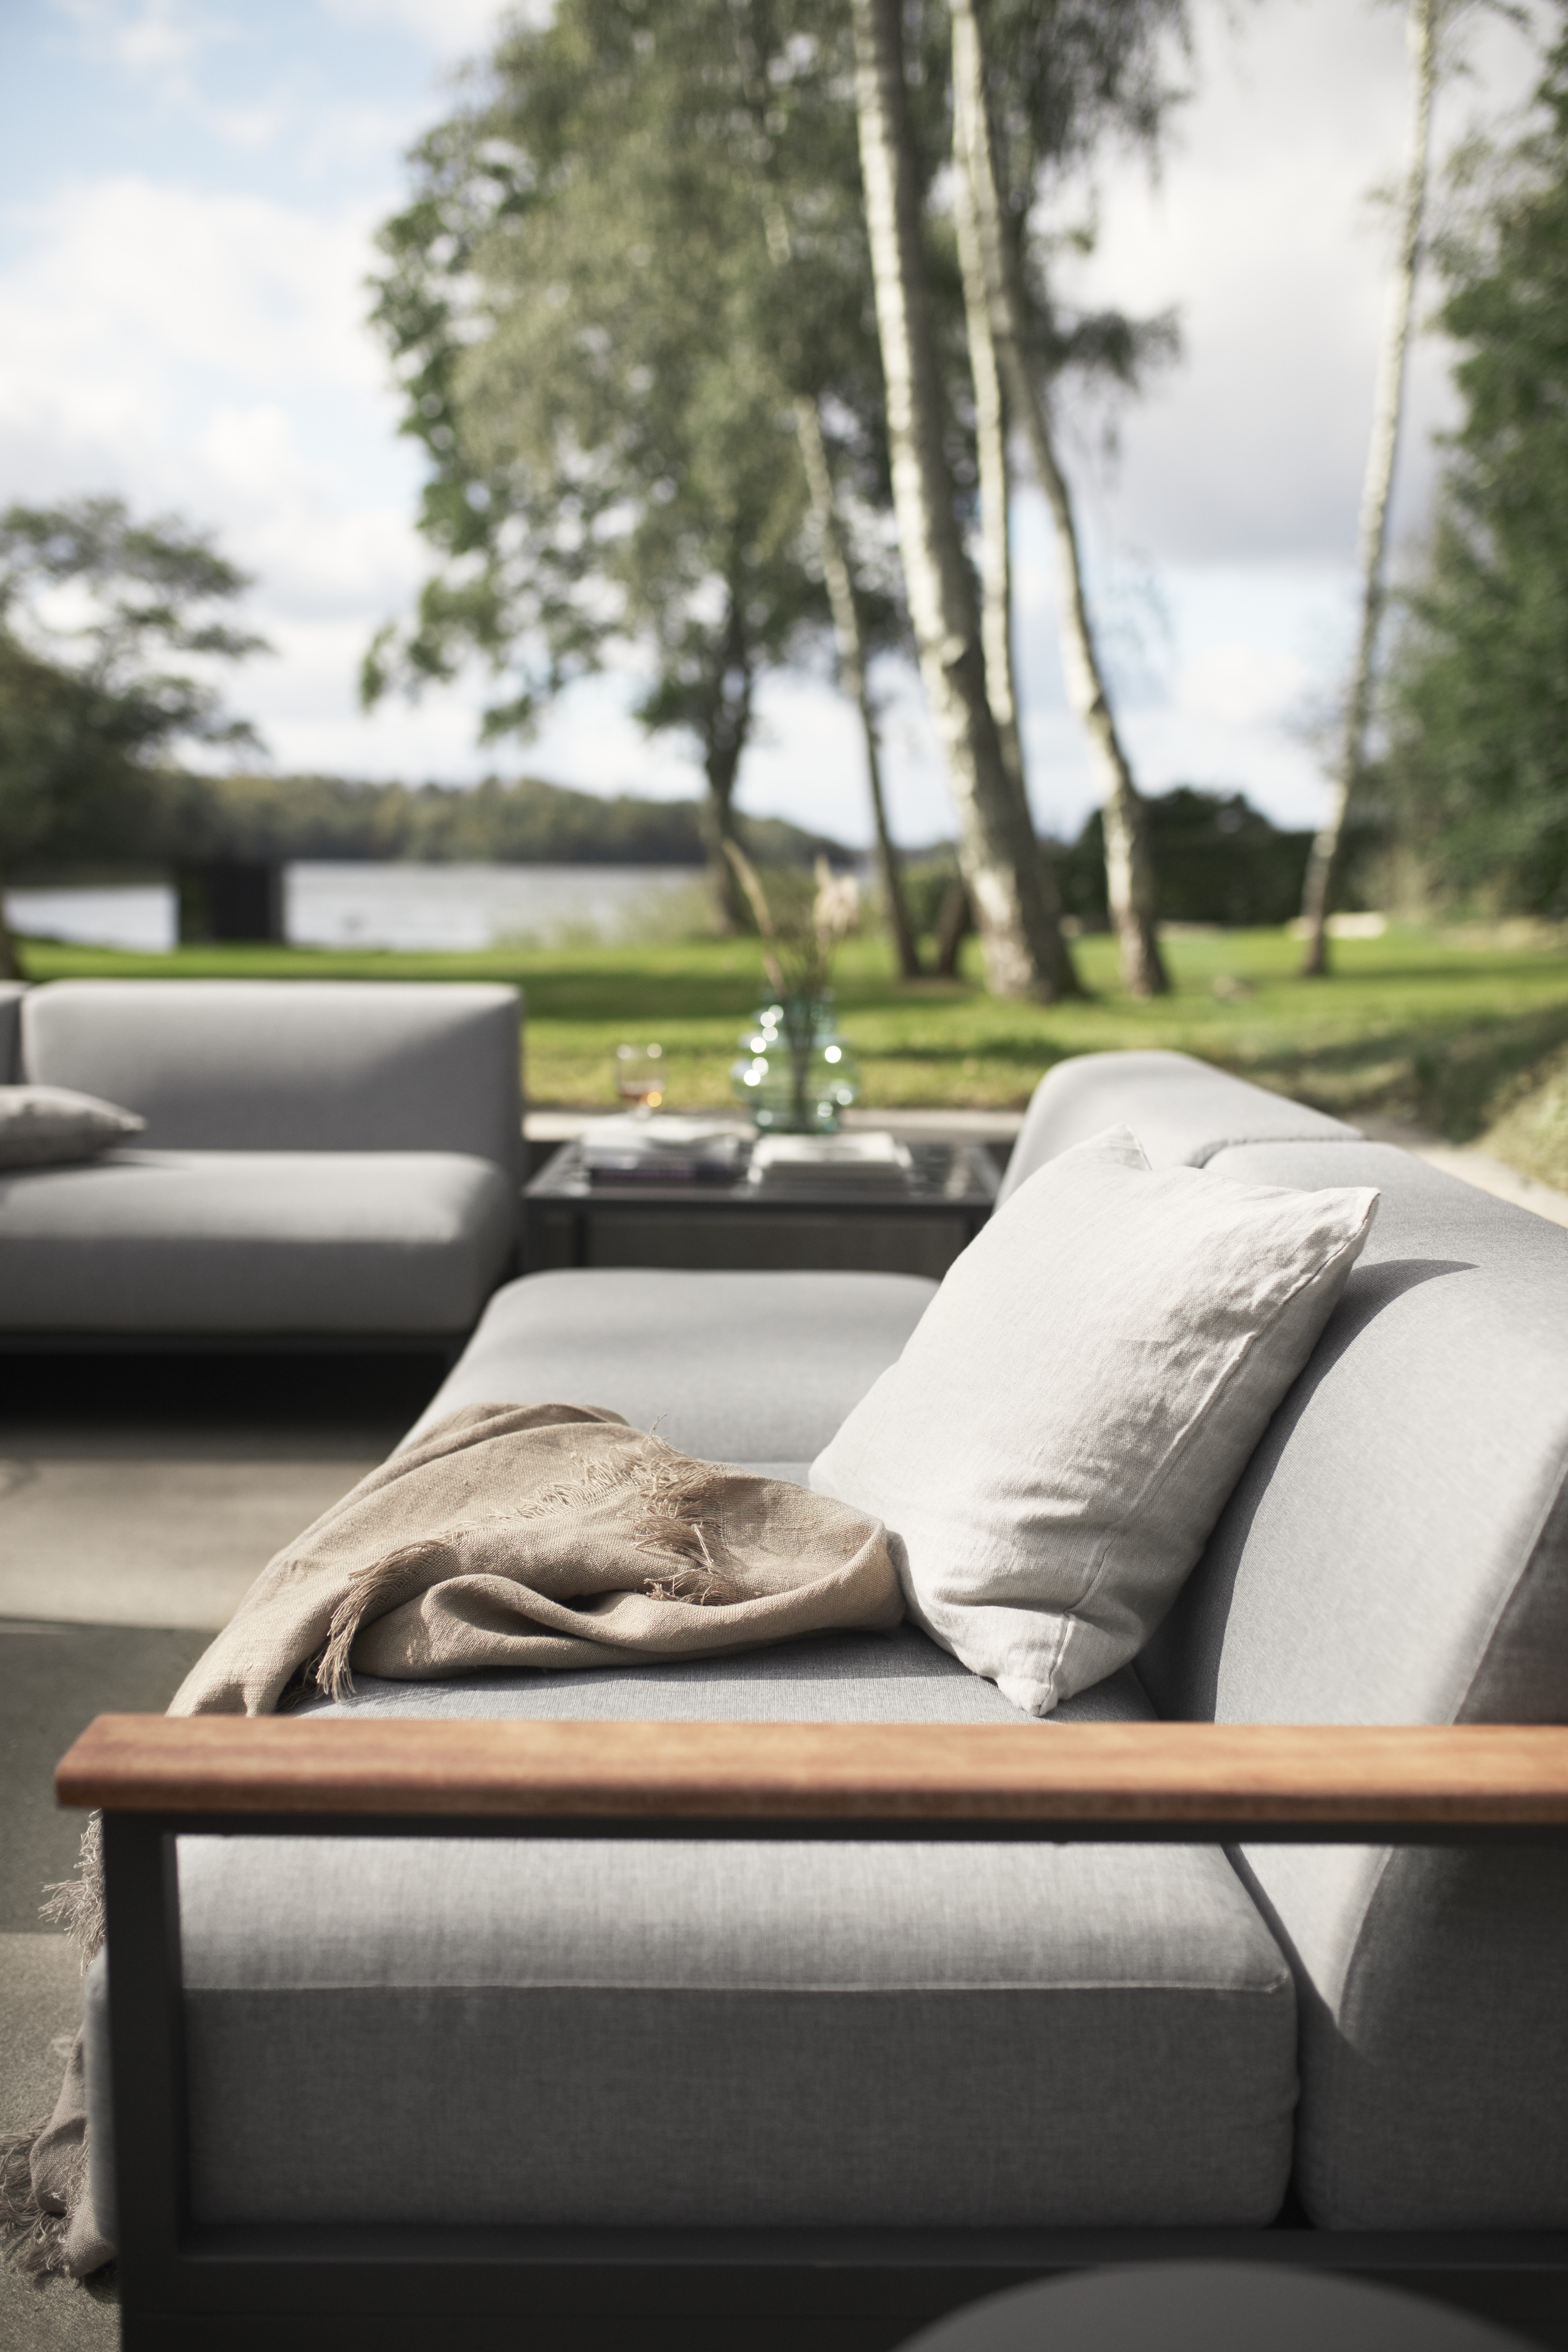 Rome, for lounging in the garden, on the balcony or patio © BoConcept